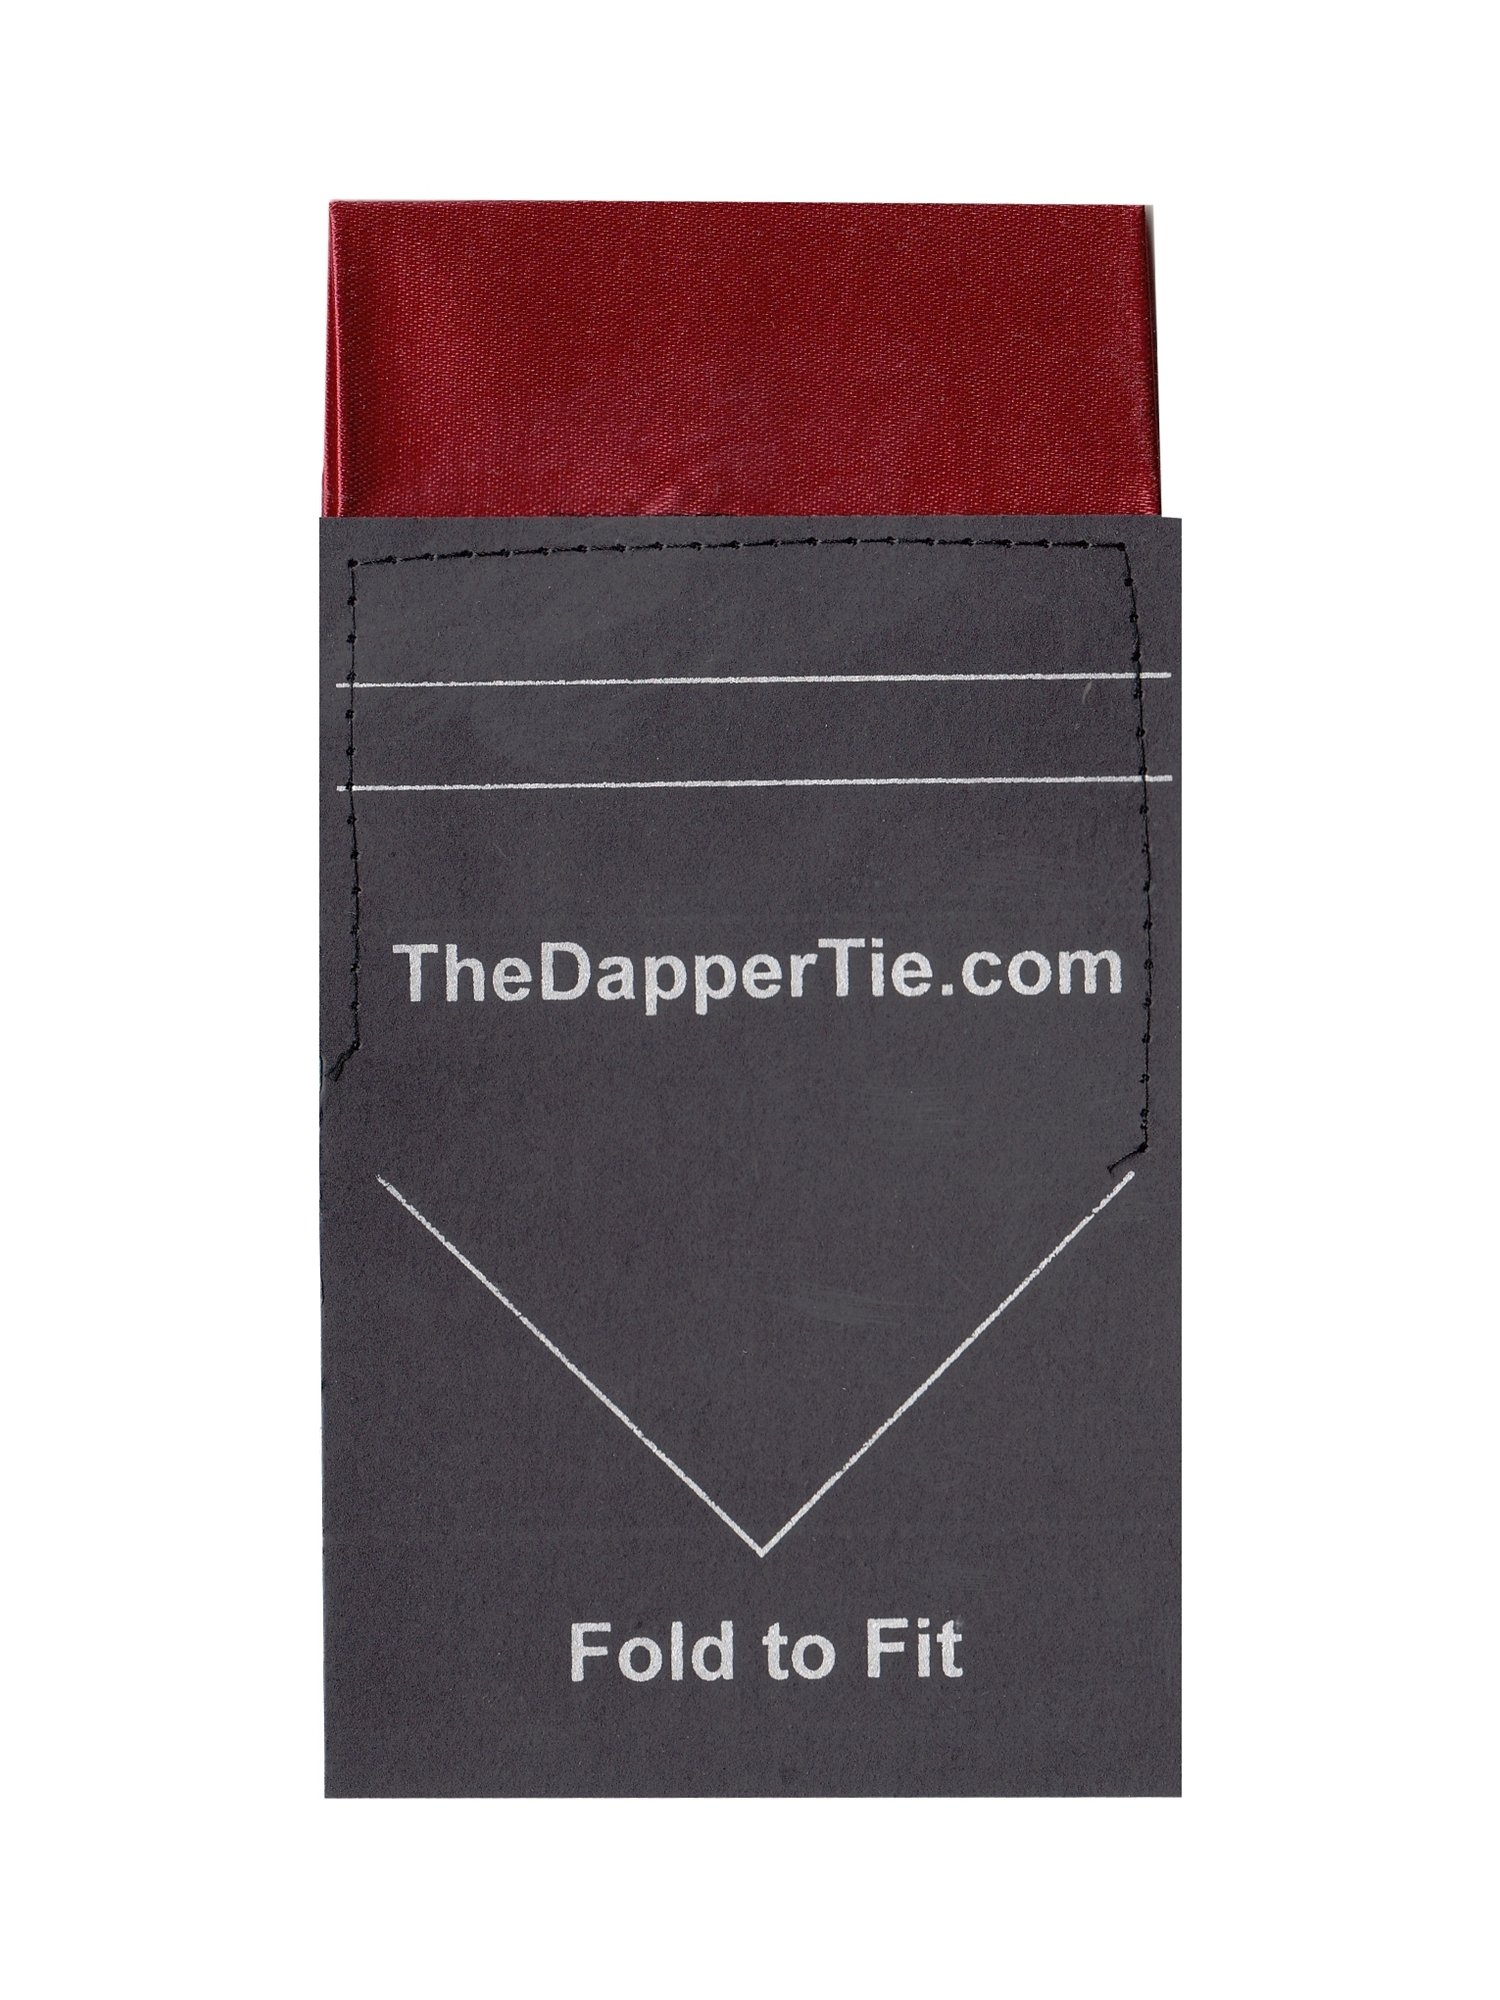 TheDapperTie - Men's Solid Flat Pre Folded Pocket Square on Card - Burgundy